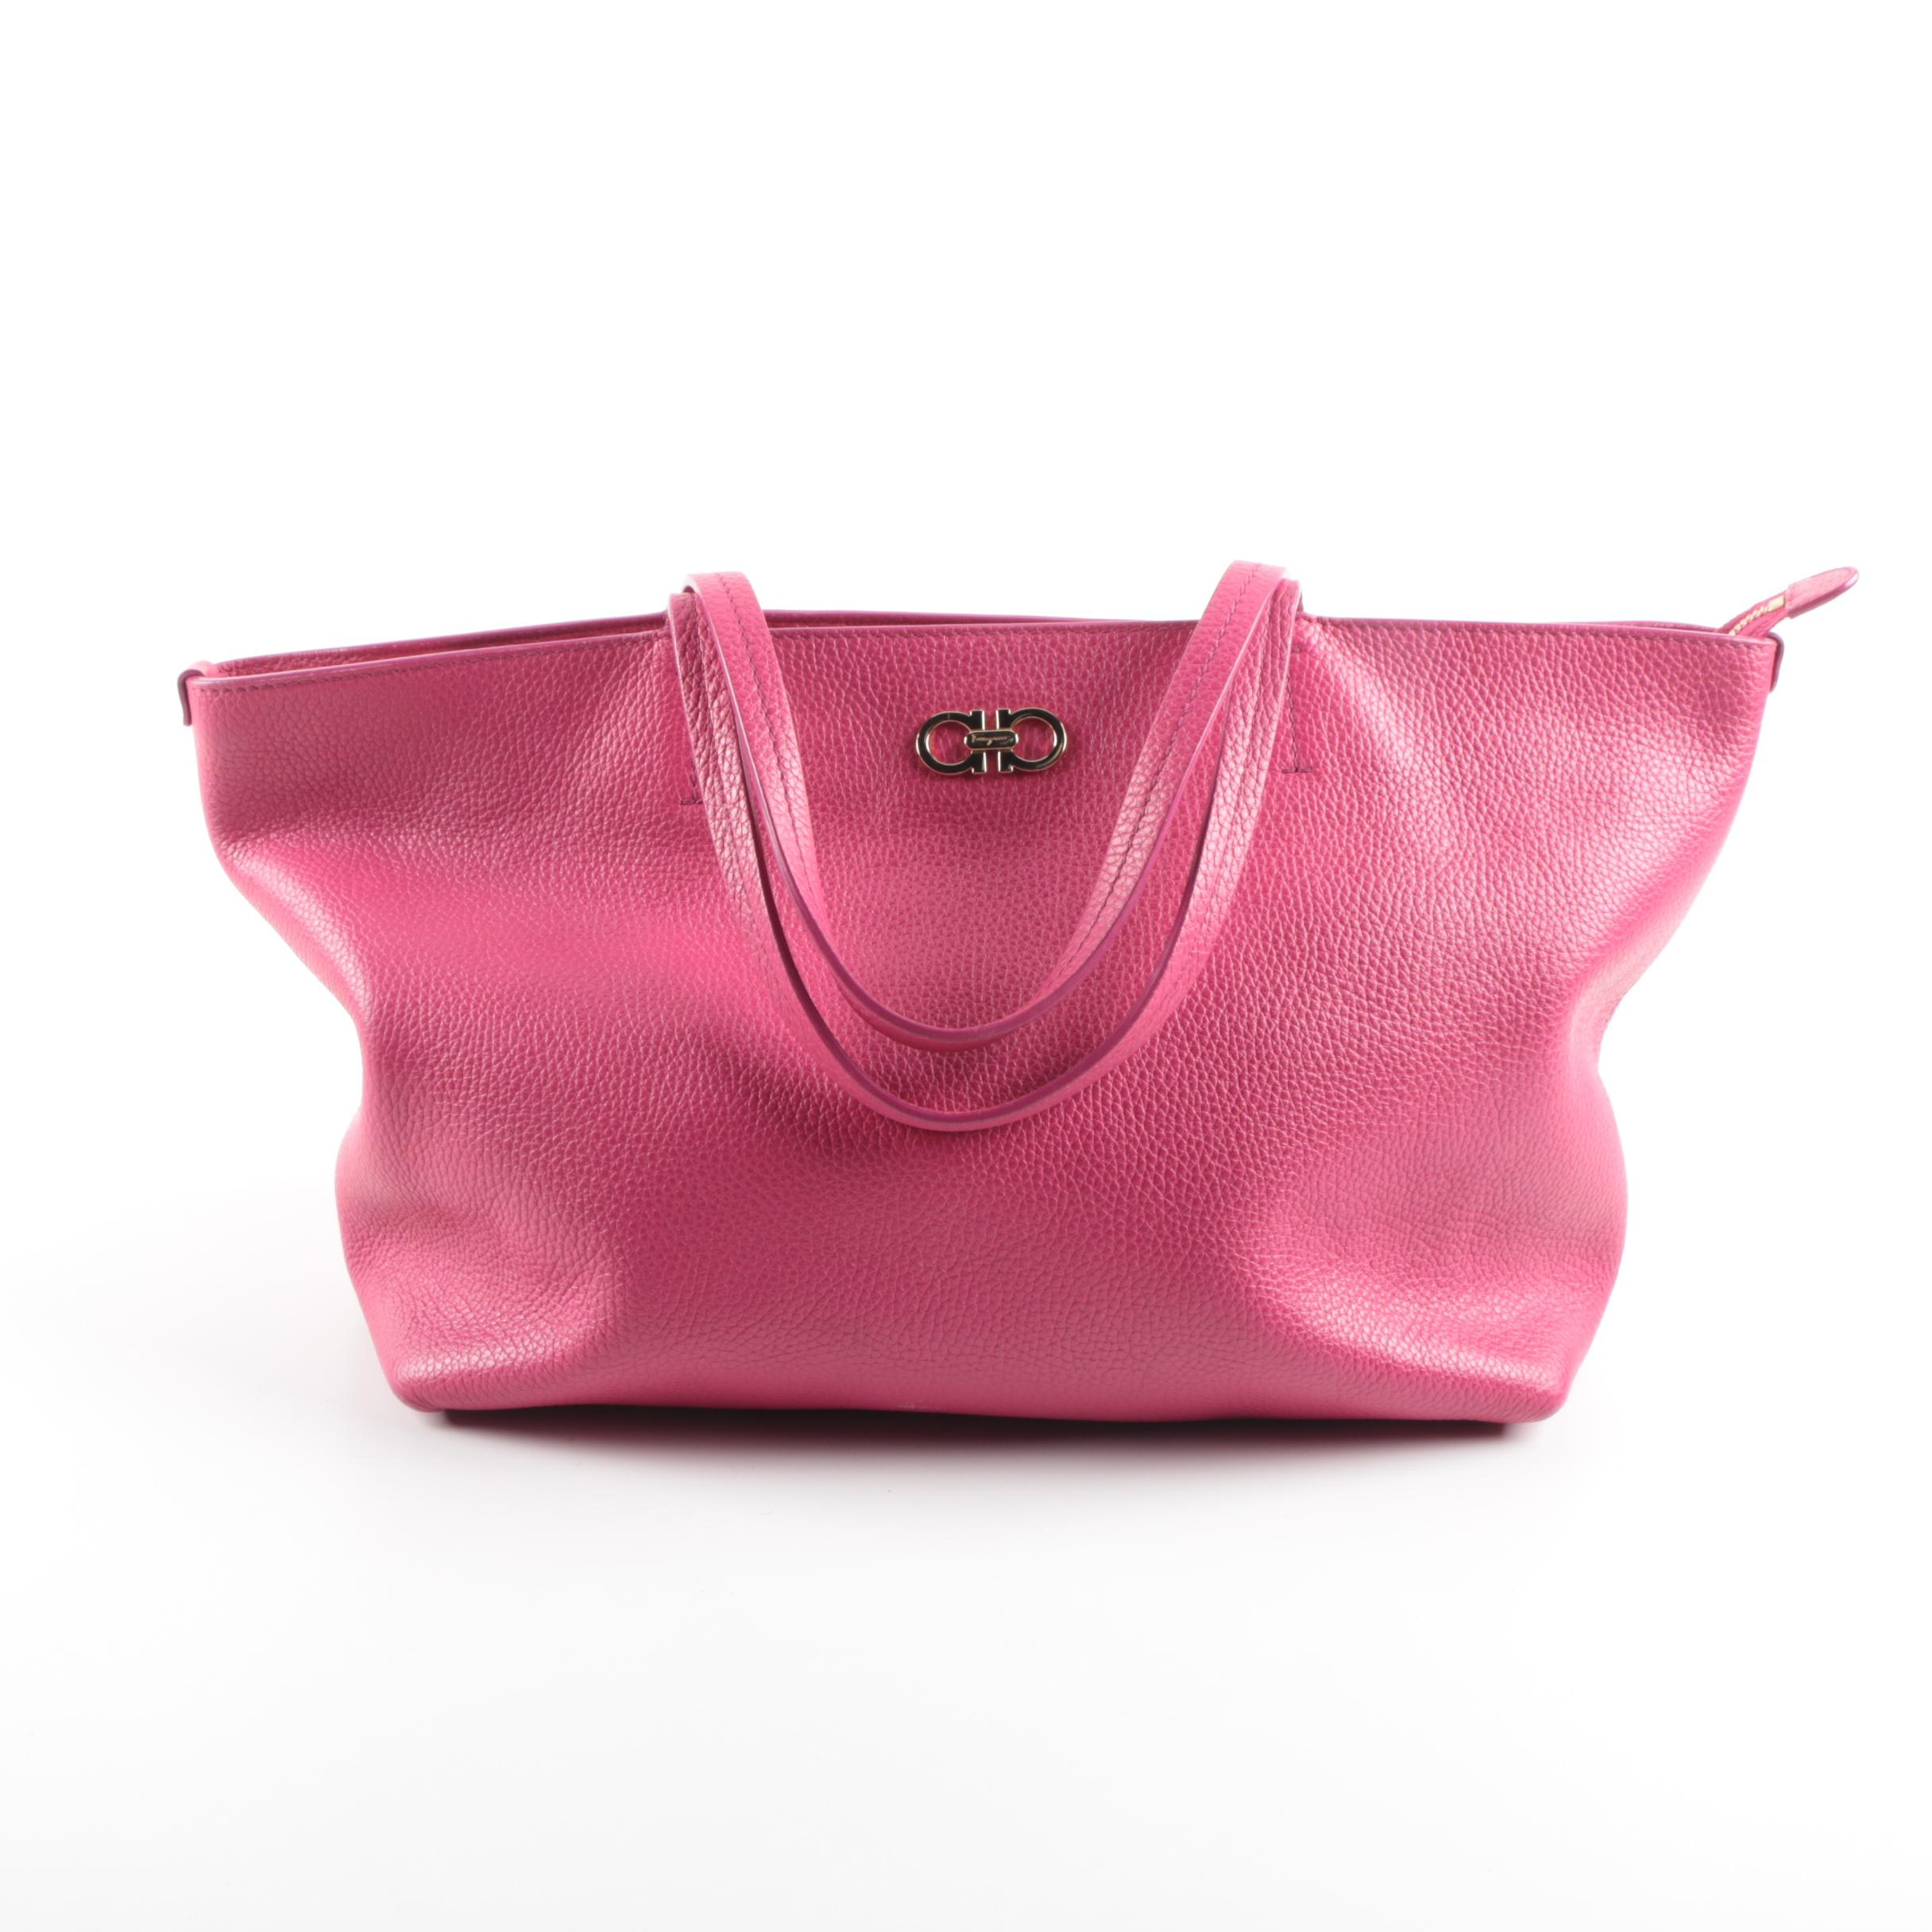 Salvatore Ferragamo Bice East-West Tote Bag in Hot Pink Pebbled Leather